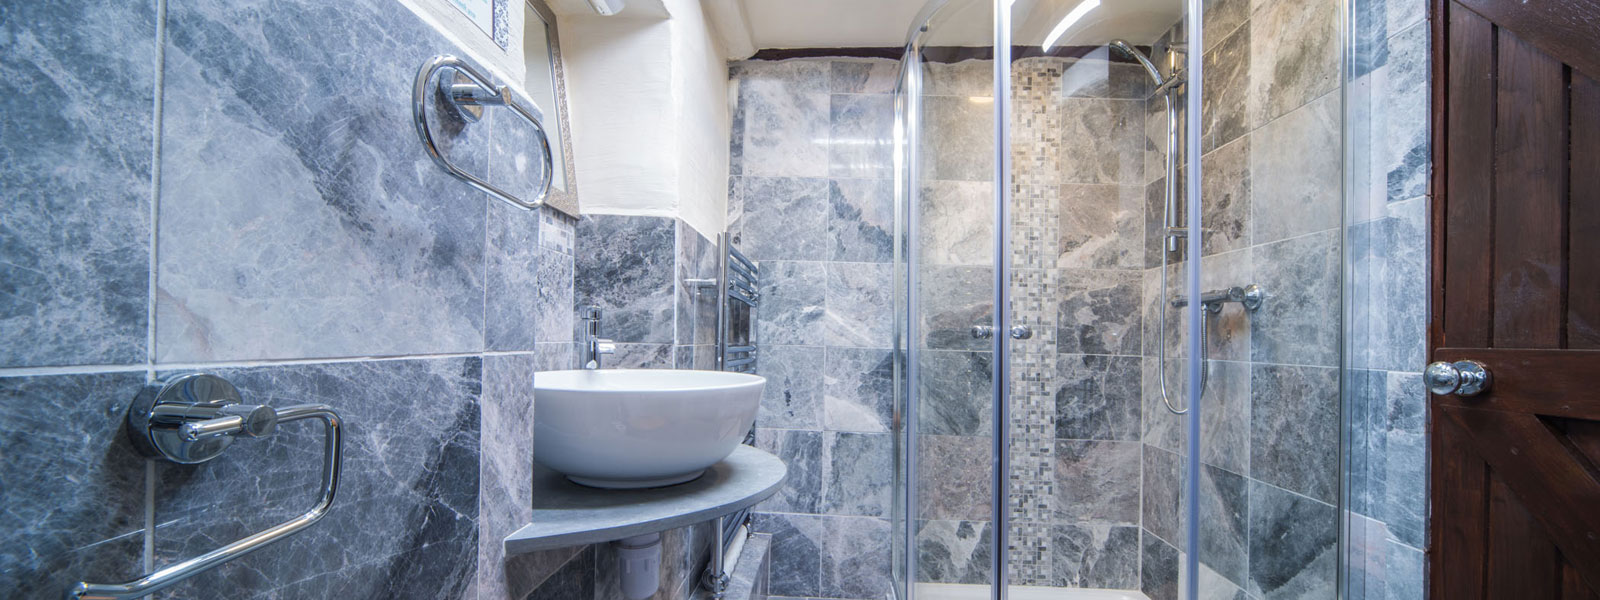 https://www.selectcottages.com/sites/default/files/stanley-ghyll-shower_0.jpg